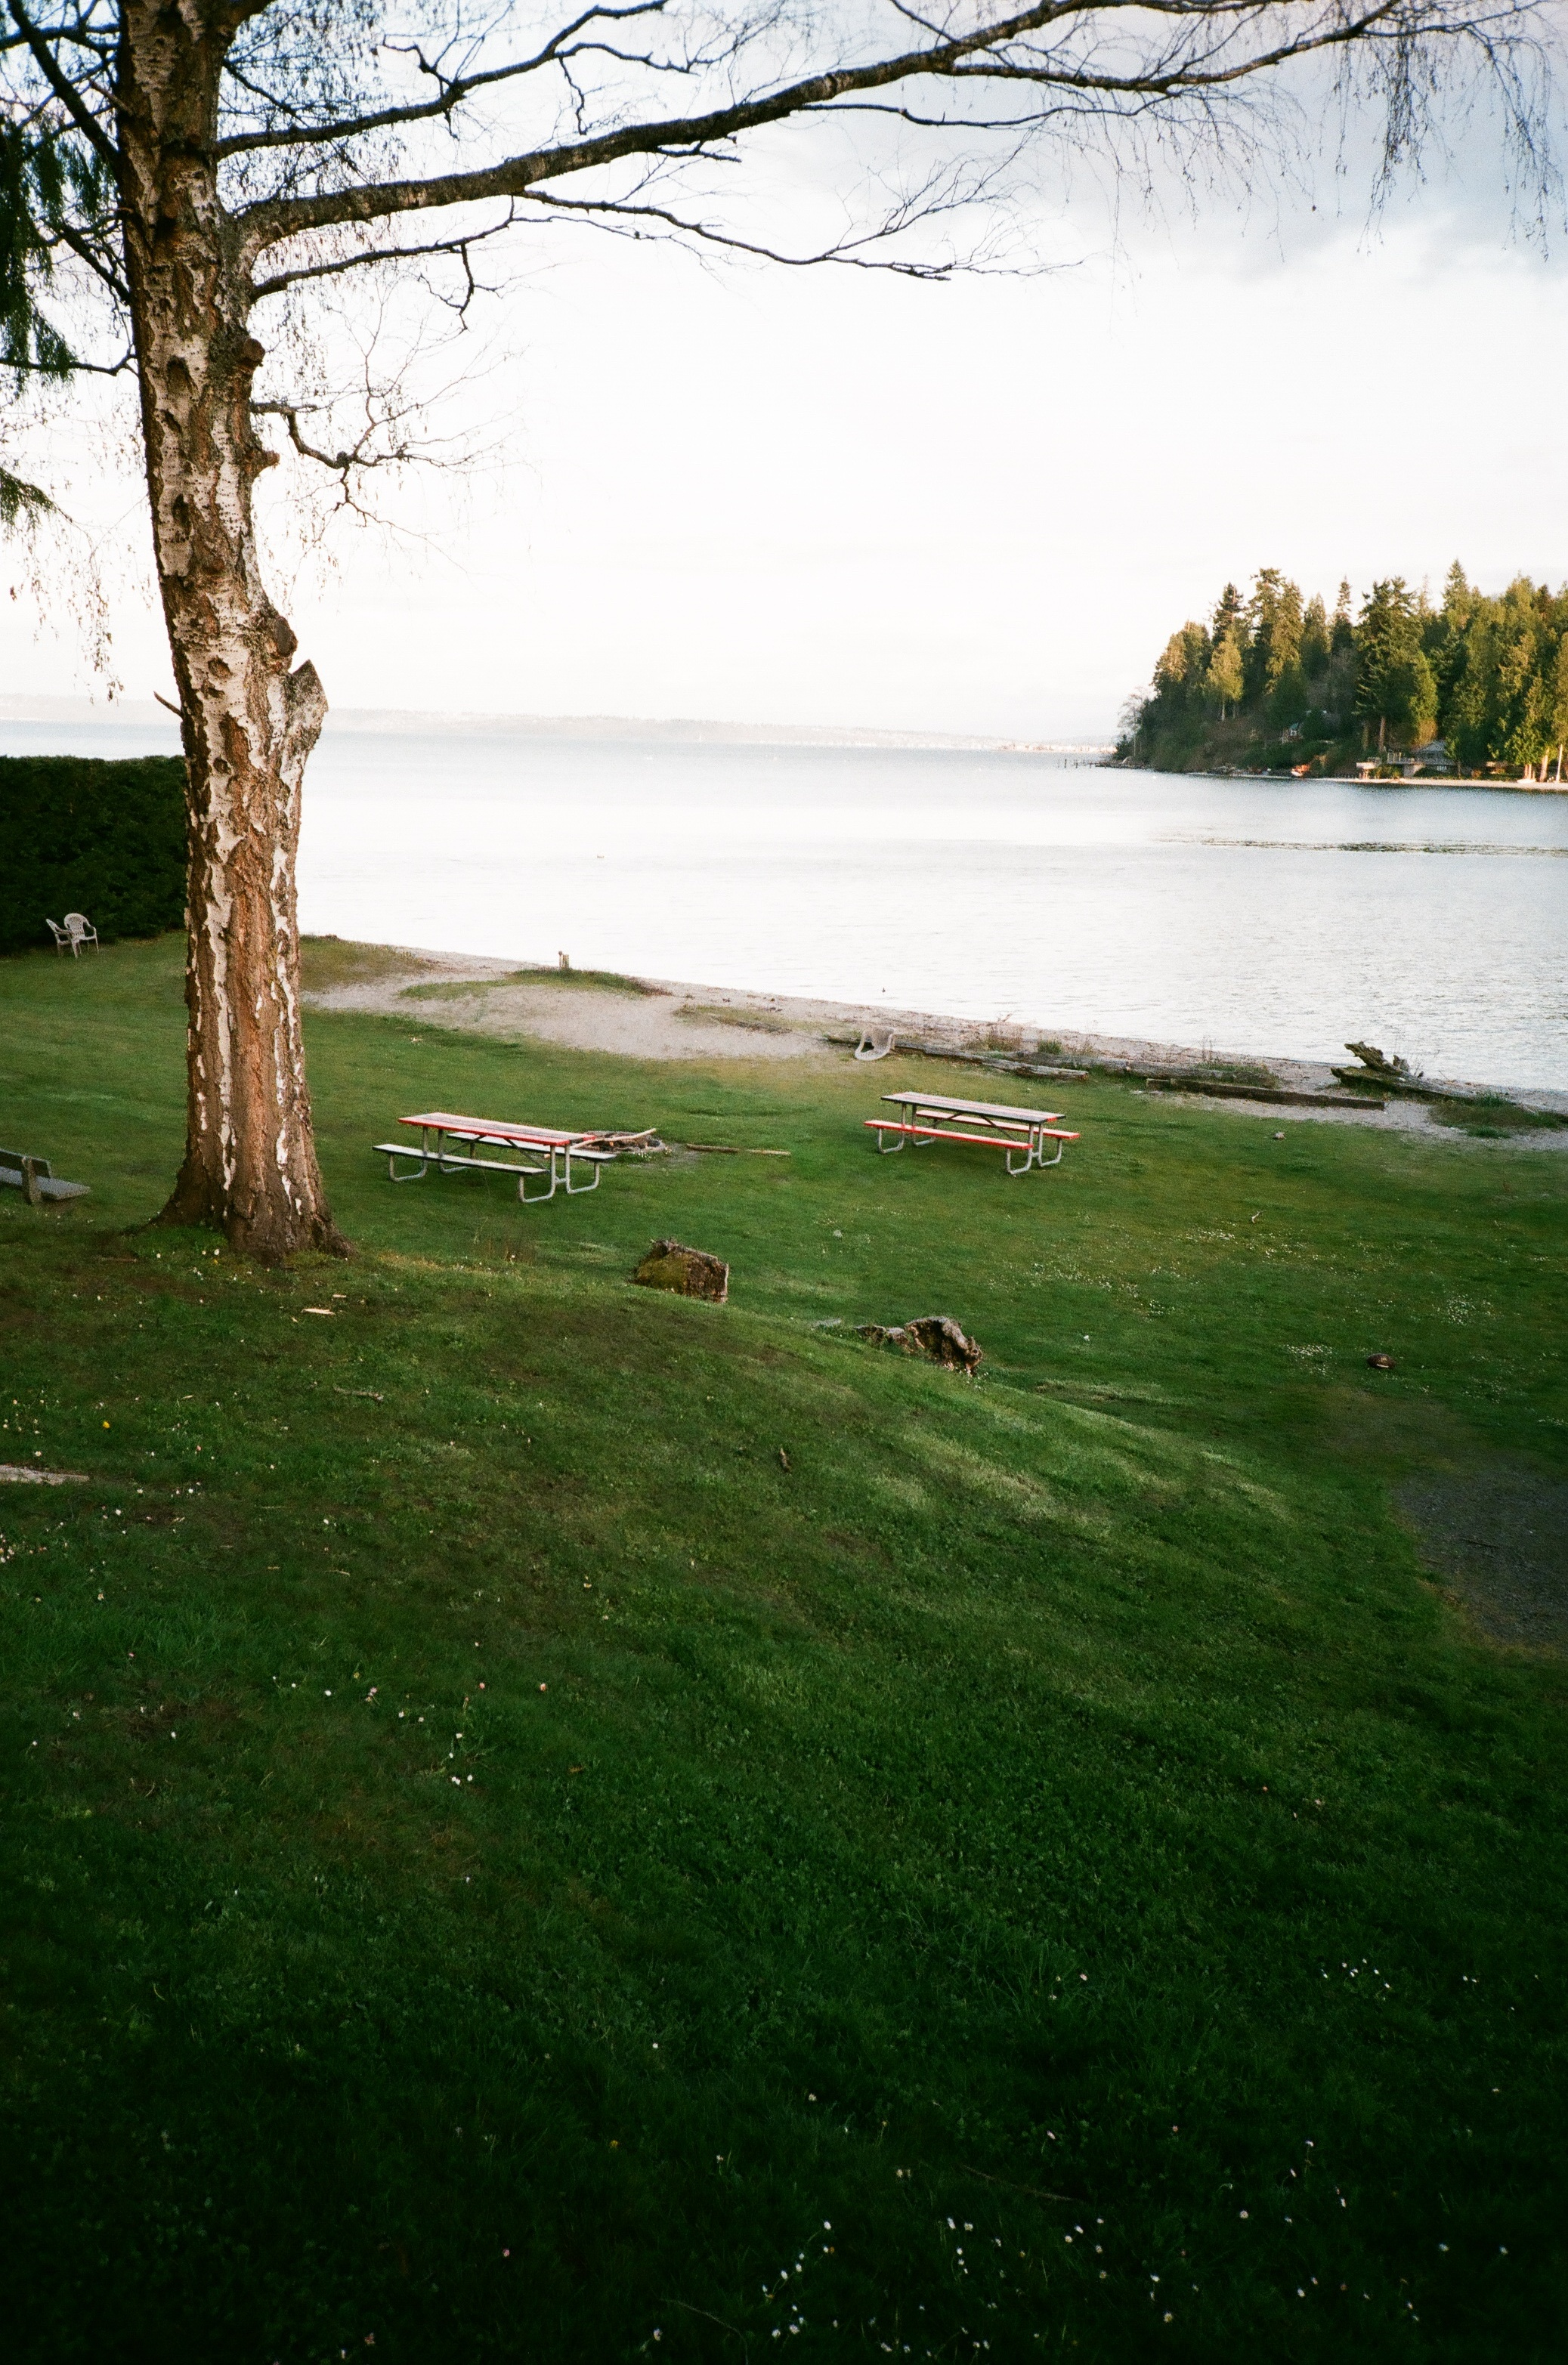 Suquamish, Washington